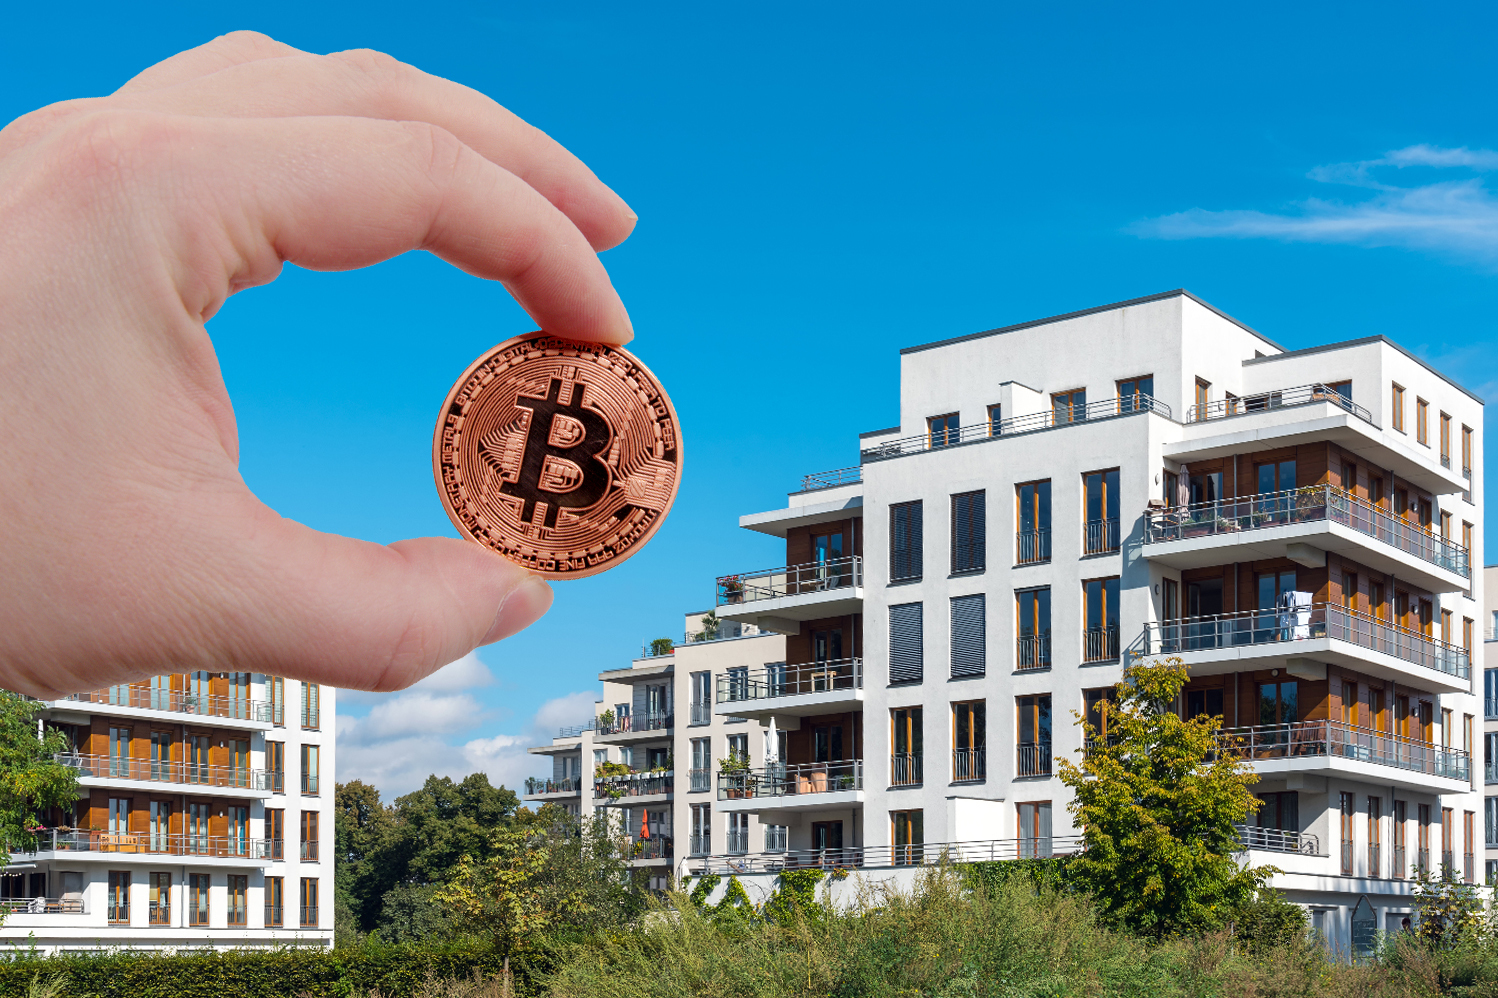 Bitcoin Antalya Homes Where you can spend your Bitcoins to buy your dream homes